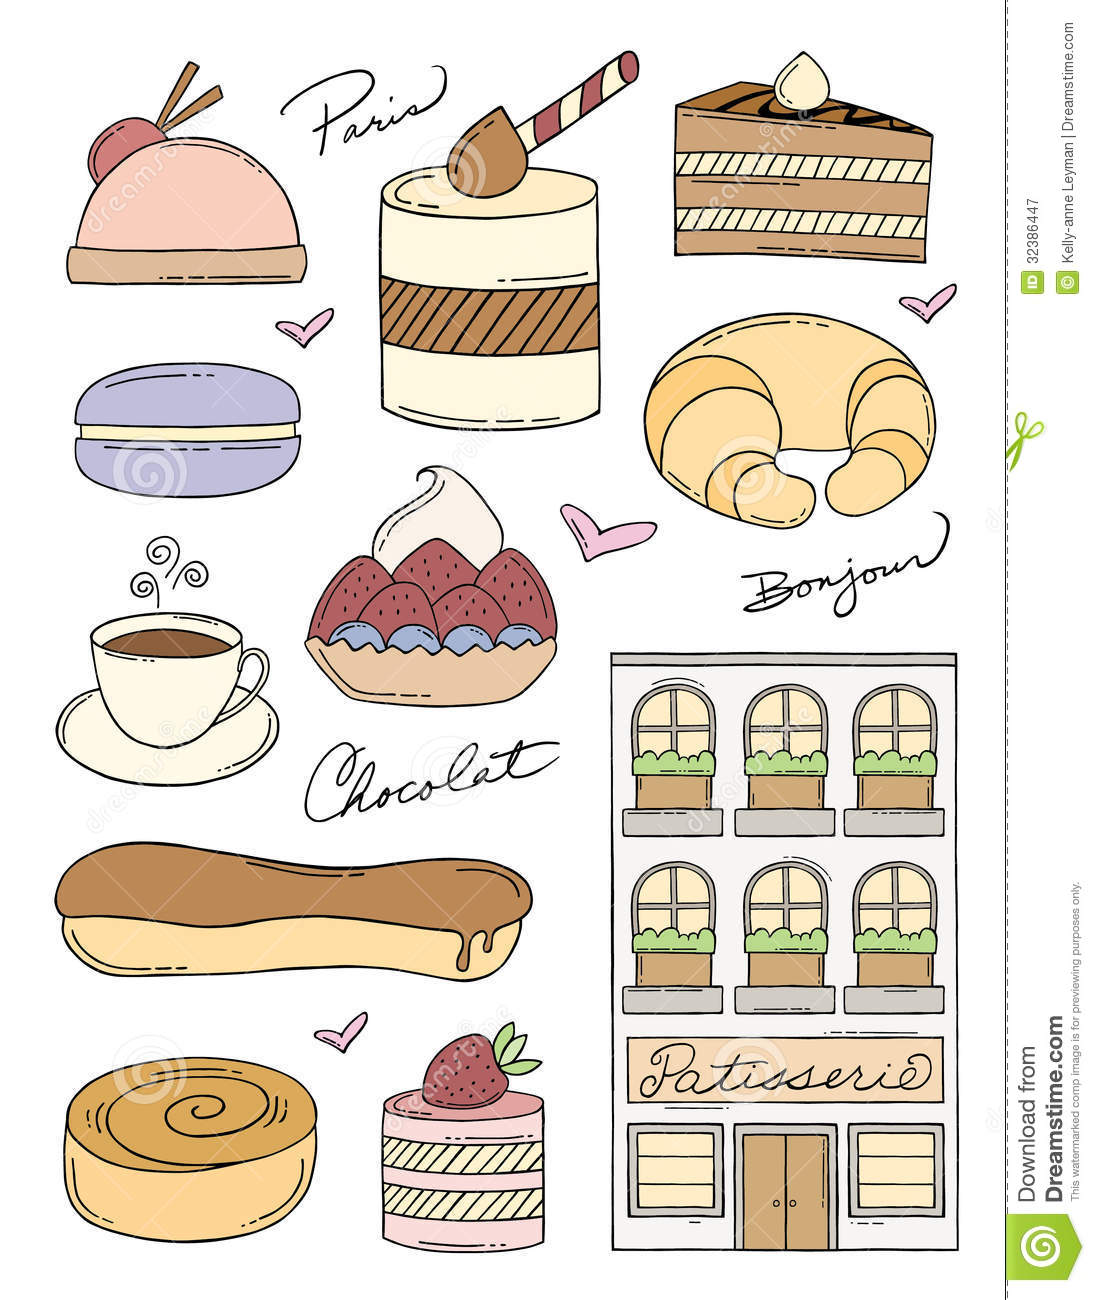 French Pastry.